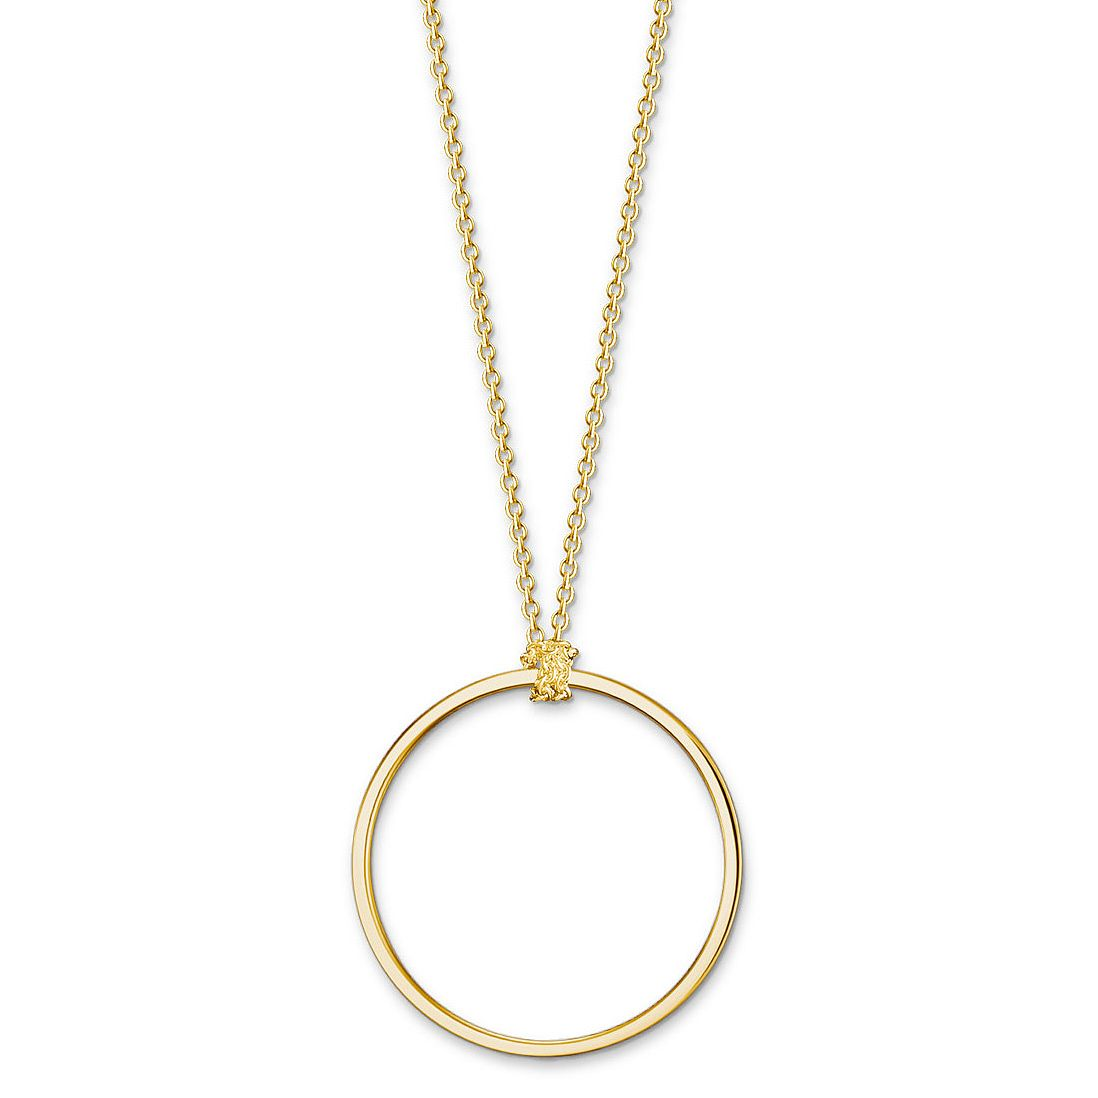 Thomas Sabo Charm Club Gold Plated Minimal Charm Necklace - Product number 4524284